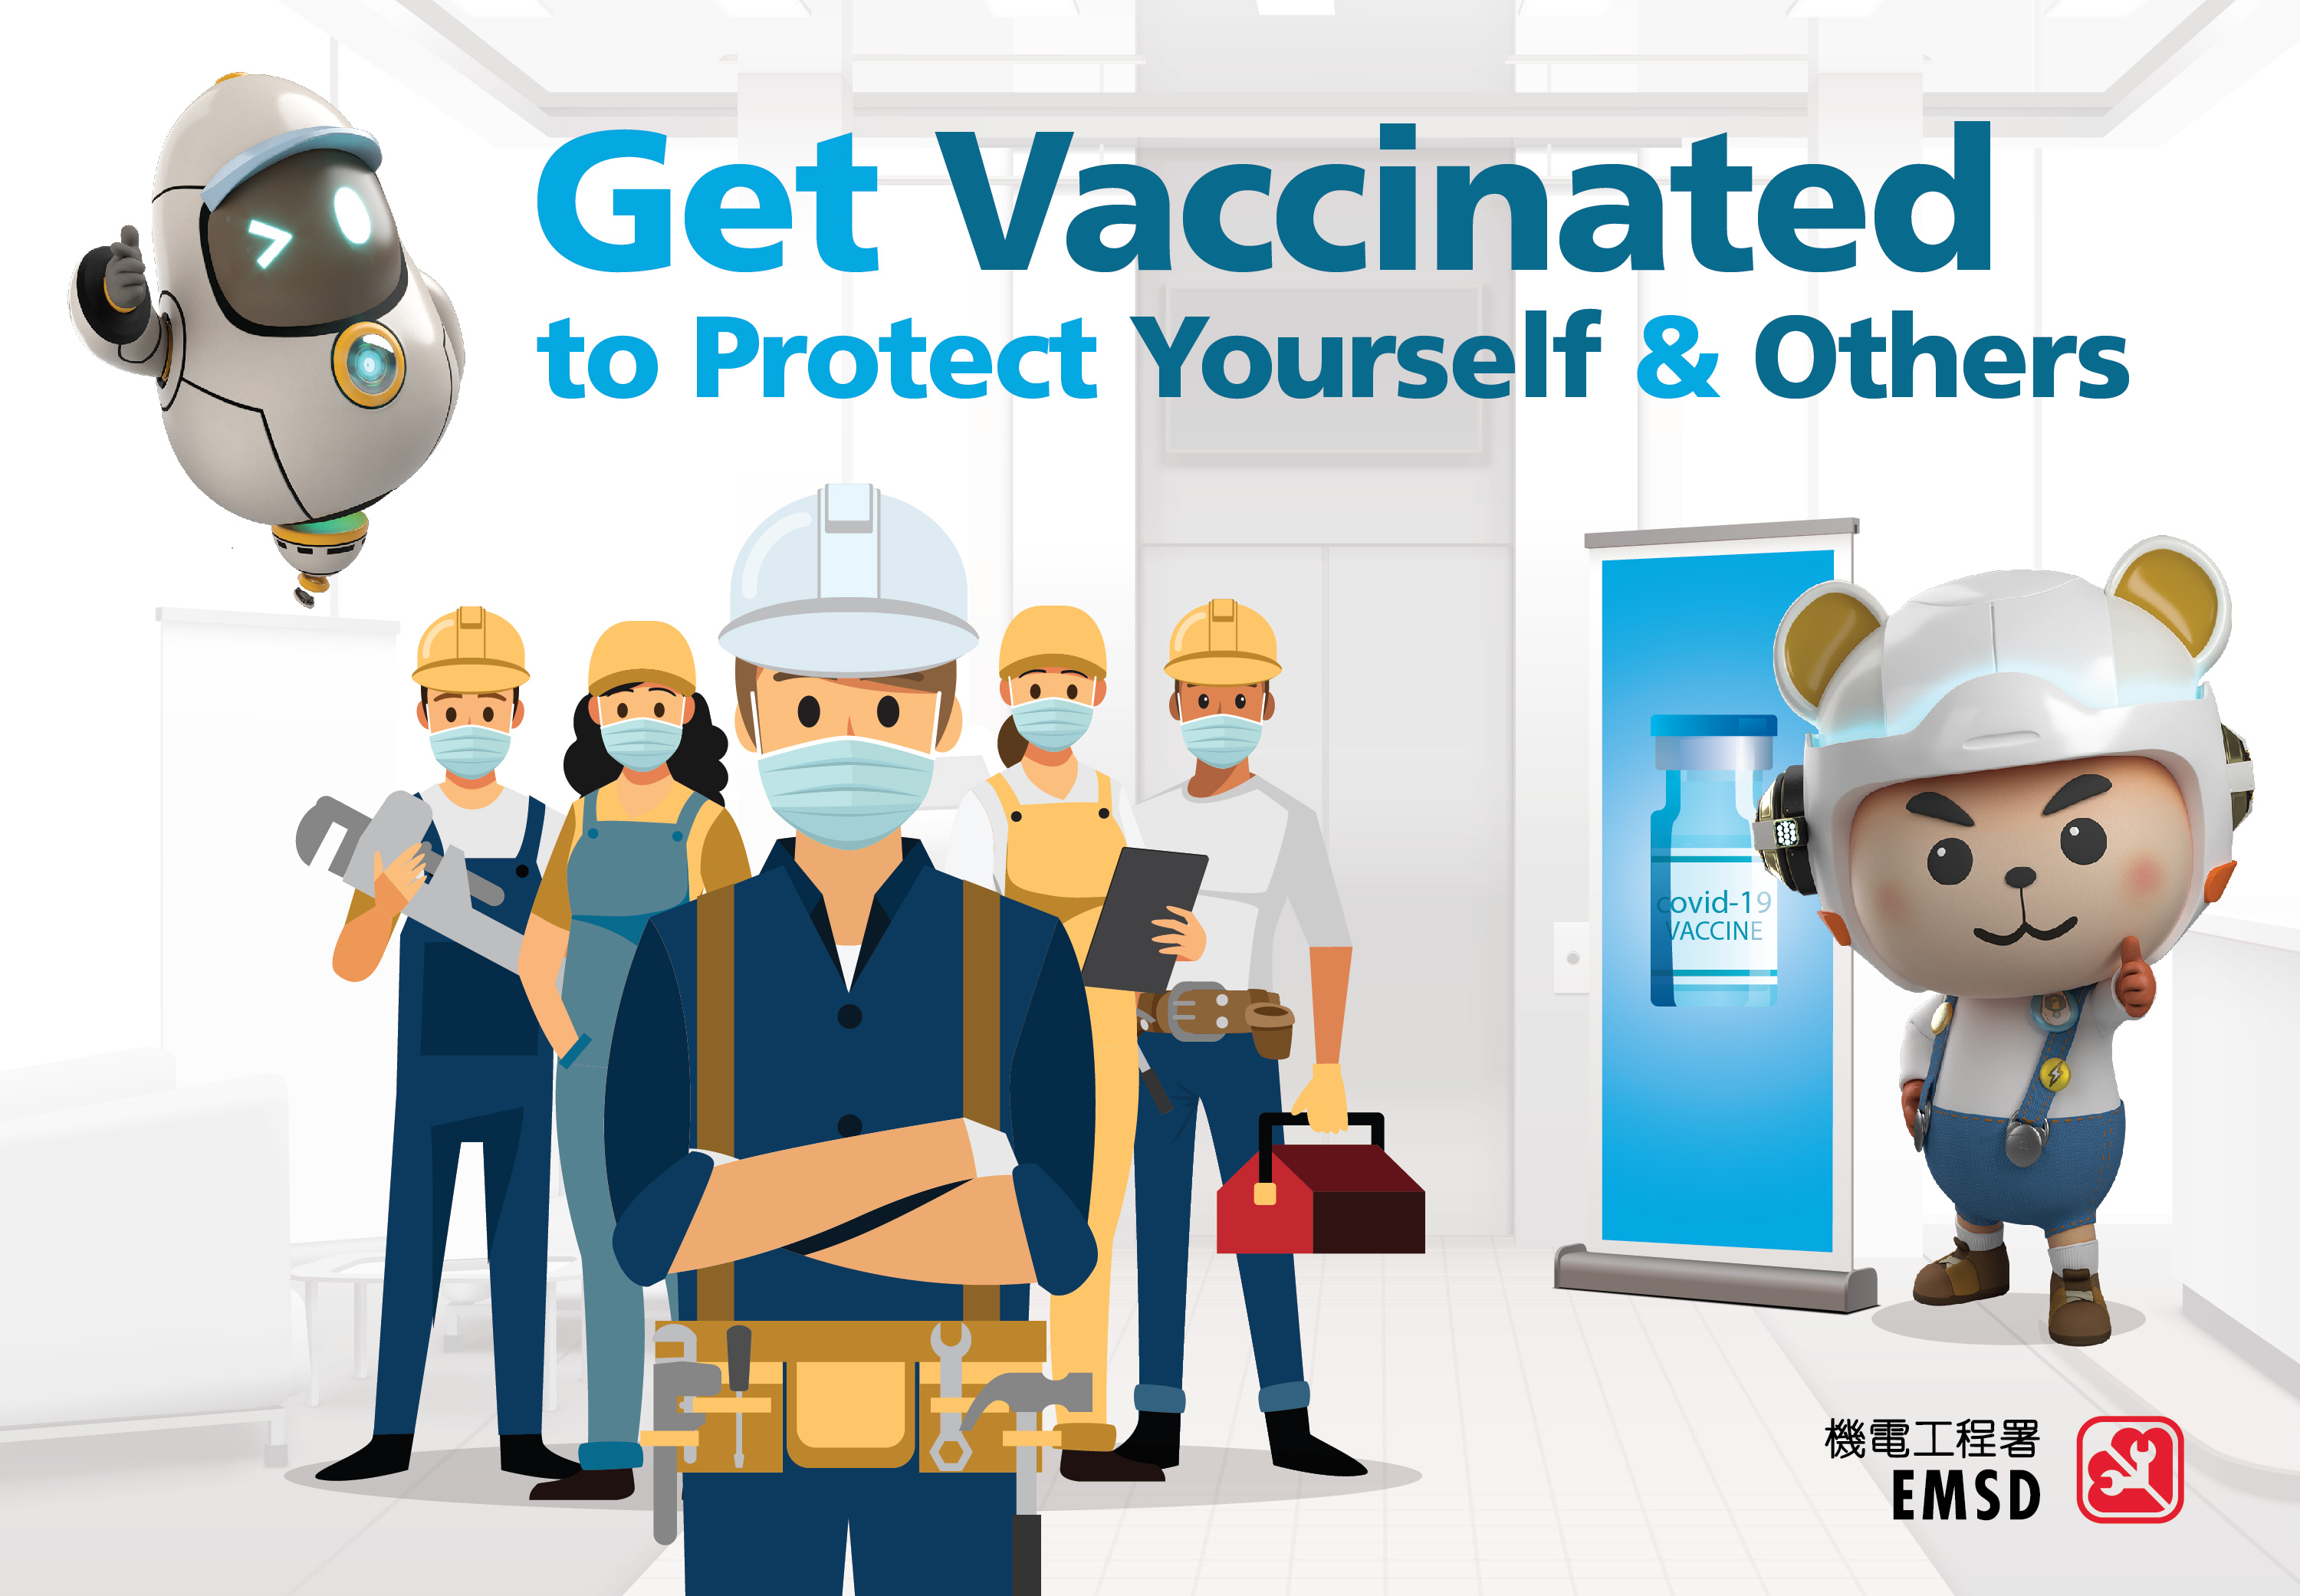 Protect yourself and others  Get Vaccinated